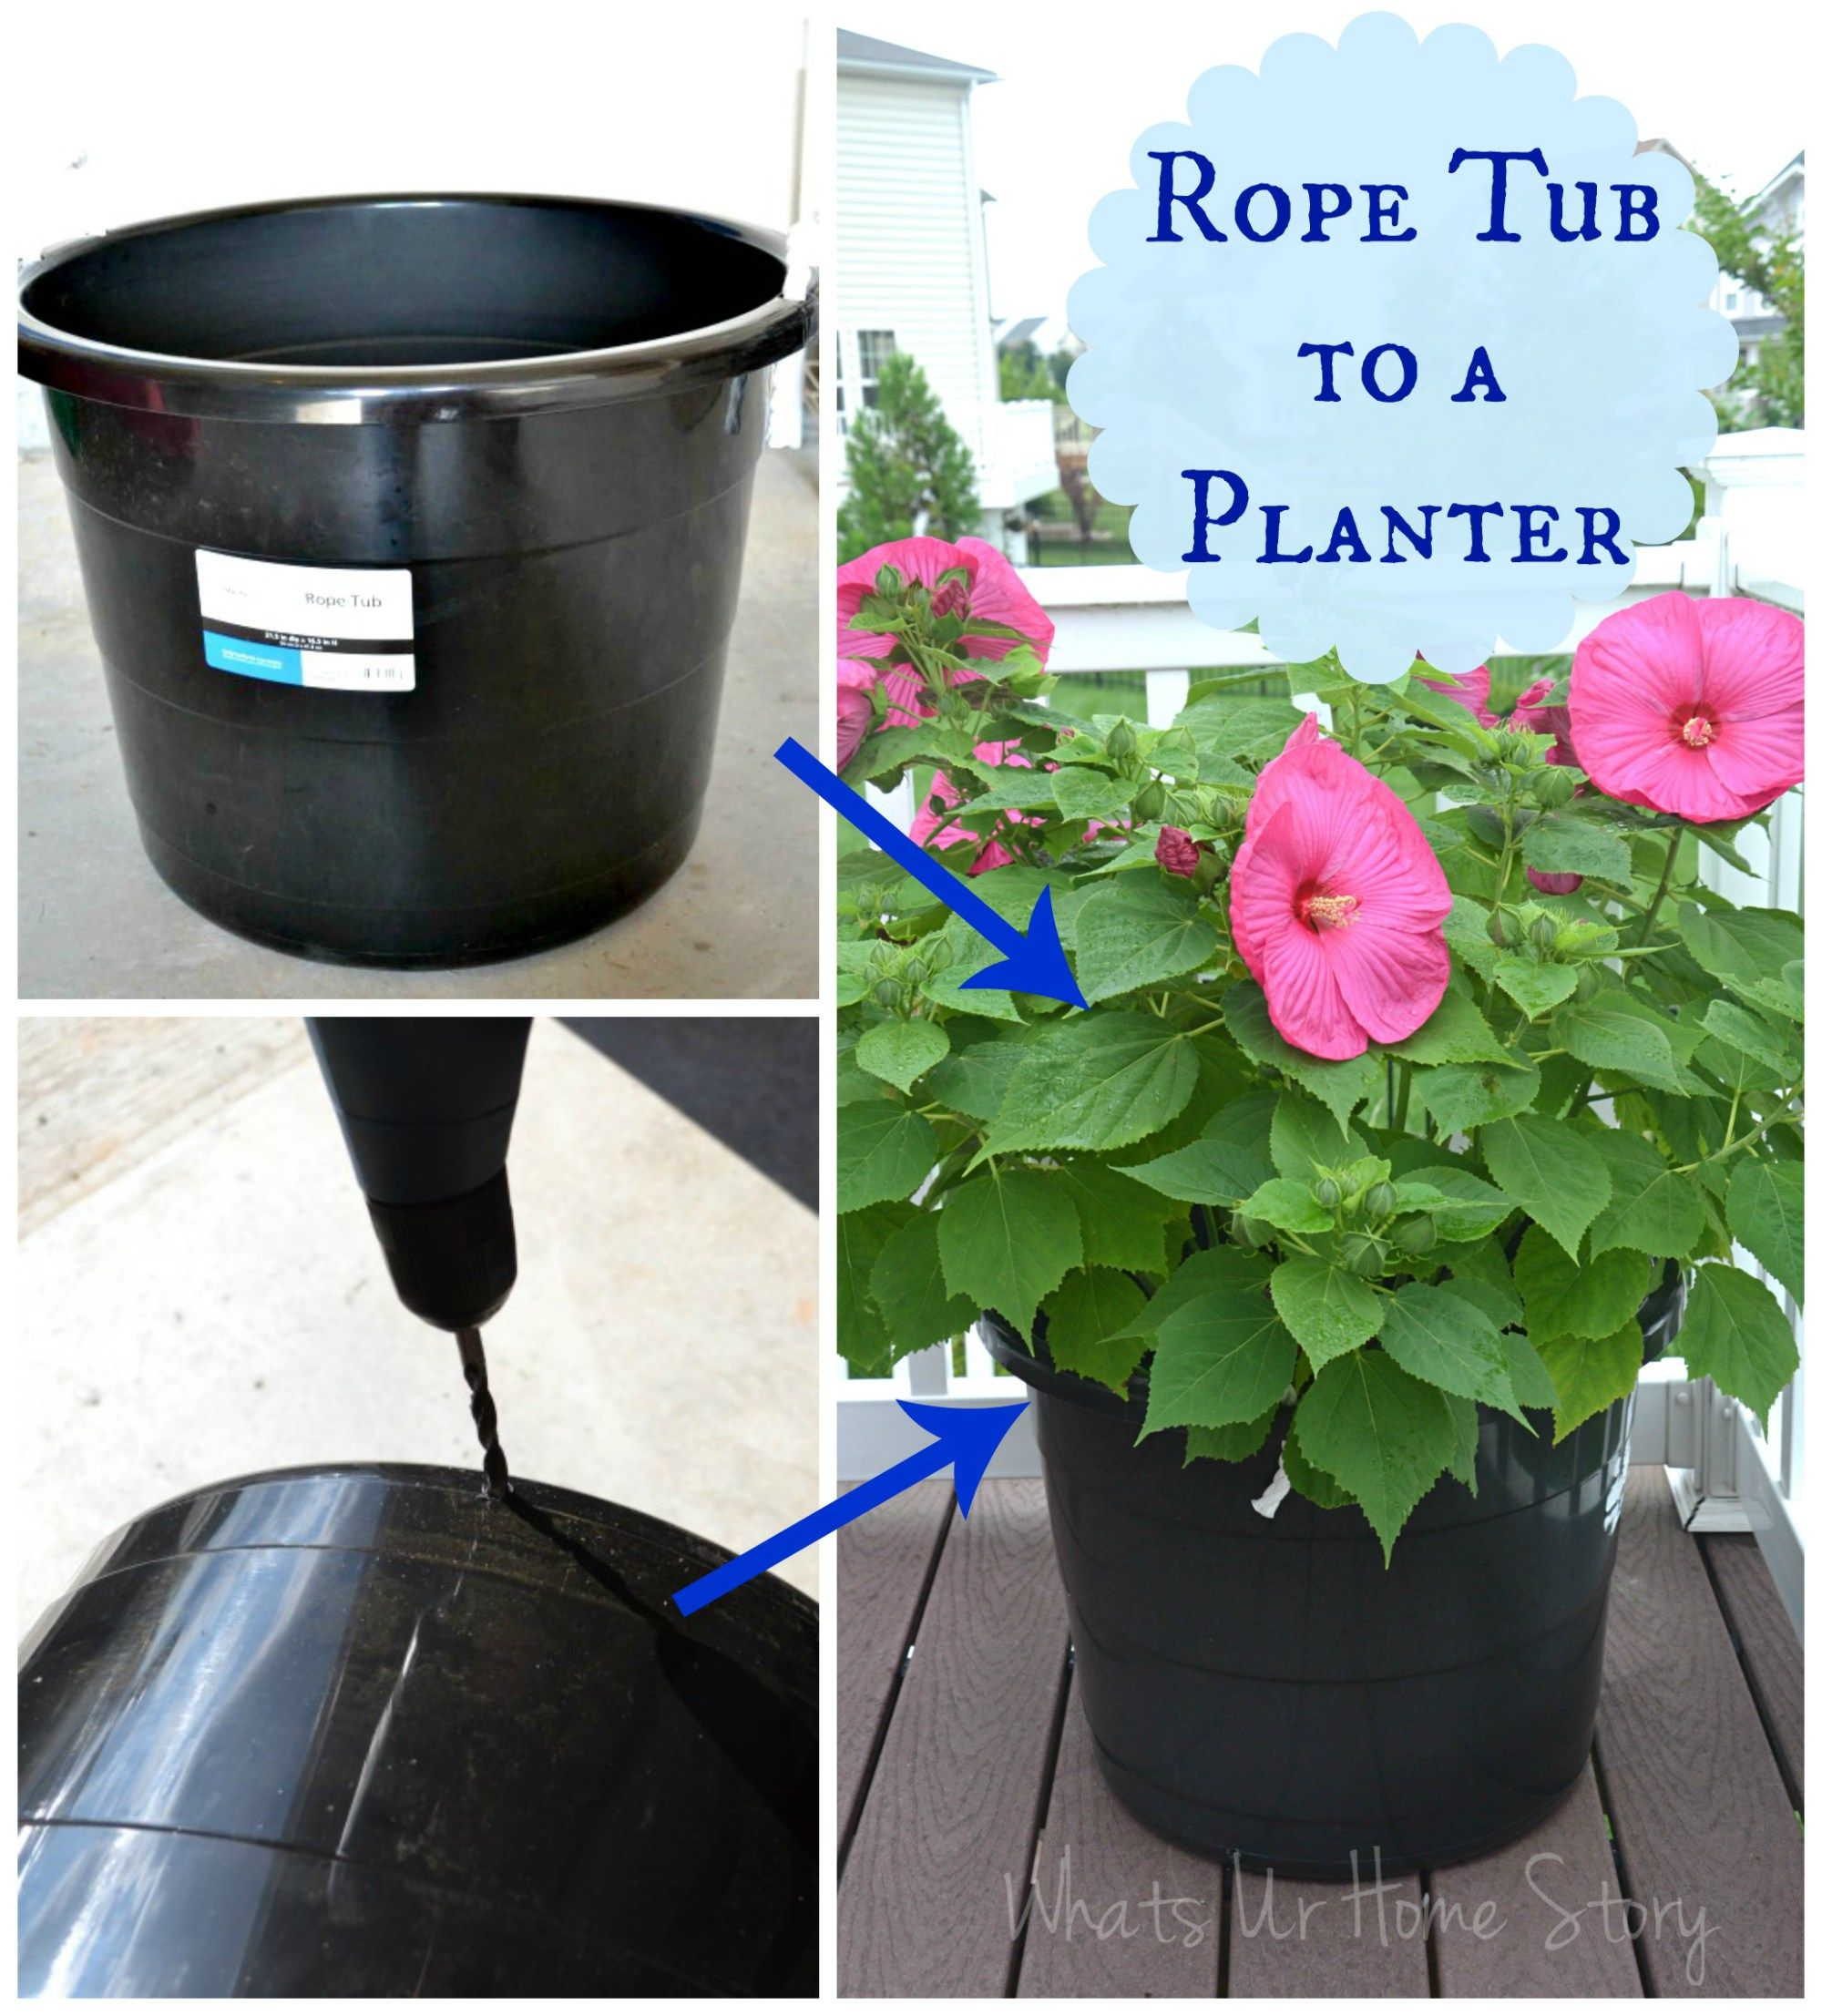 The Cheapest Way To Diy Large Plant Pots Whats Ur Home Story Plant Pot Diy Cheap Plant Pots Large Plant Pots